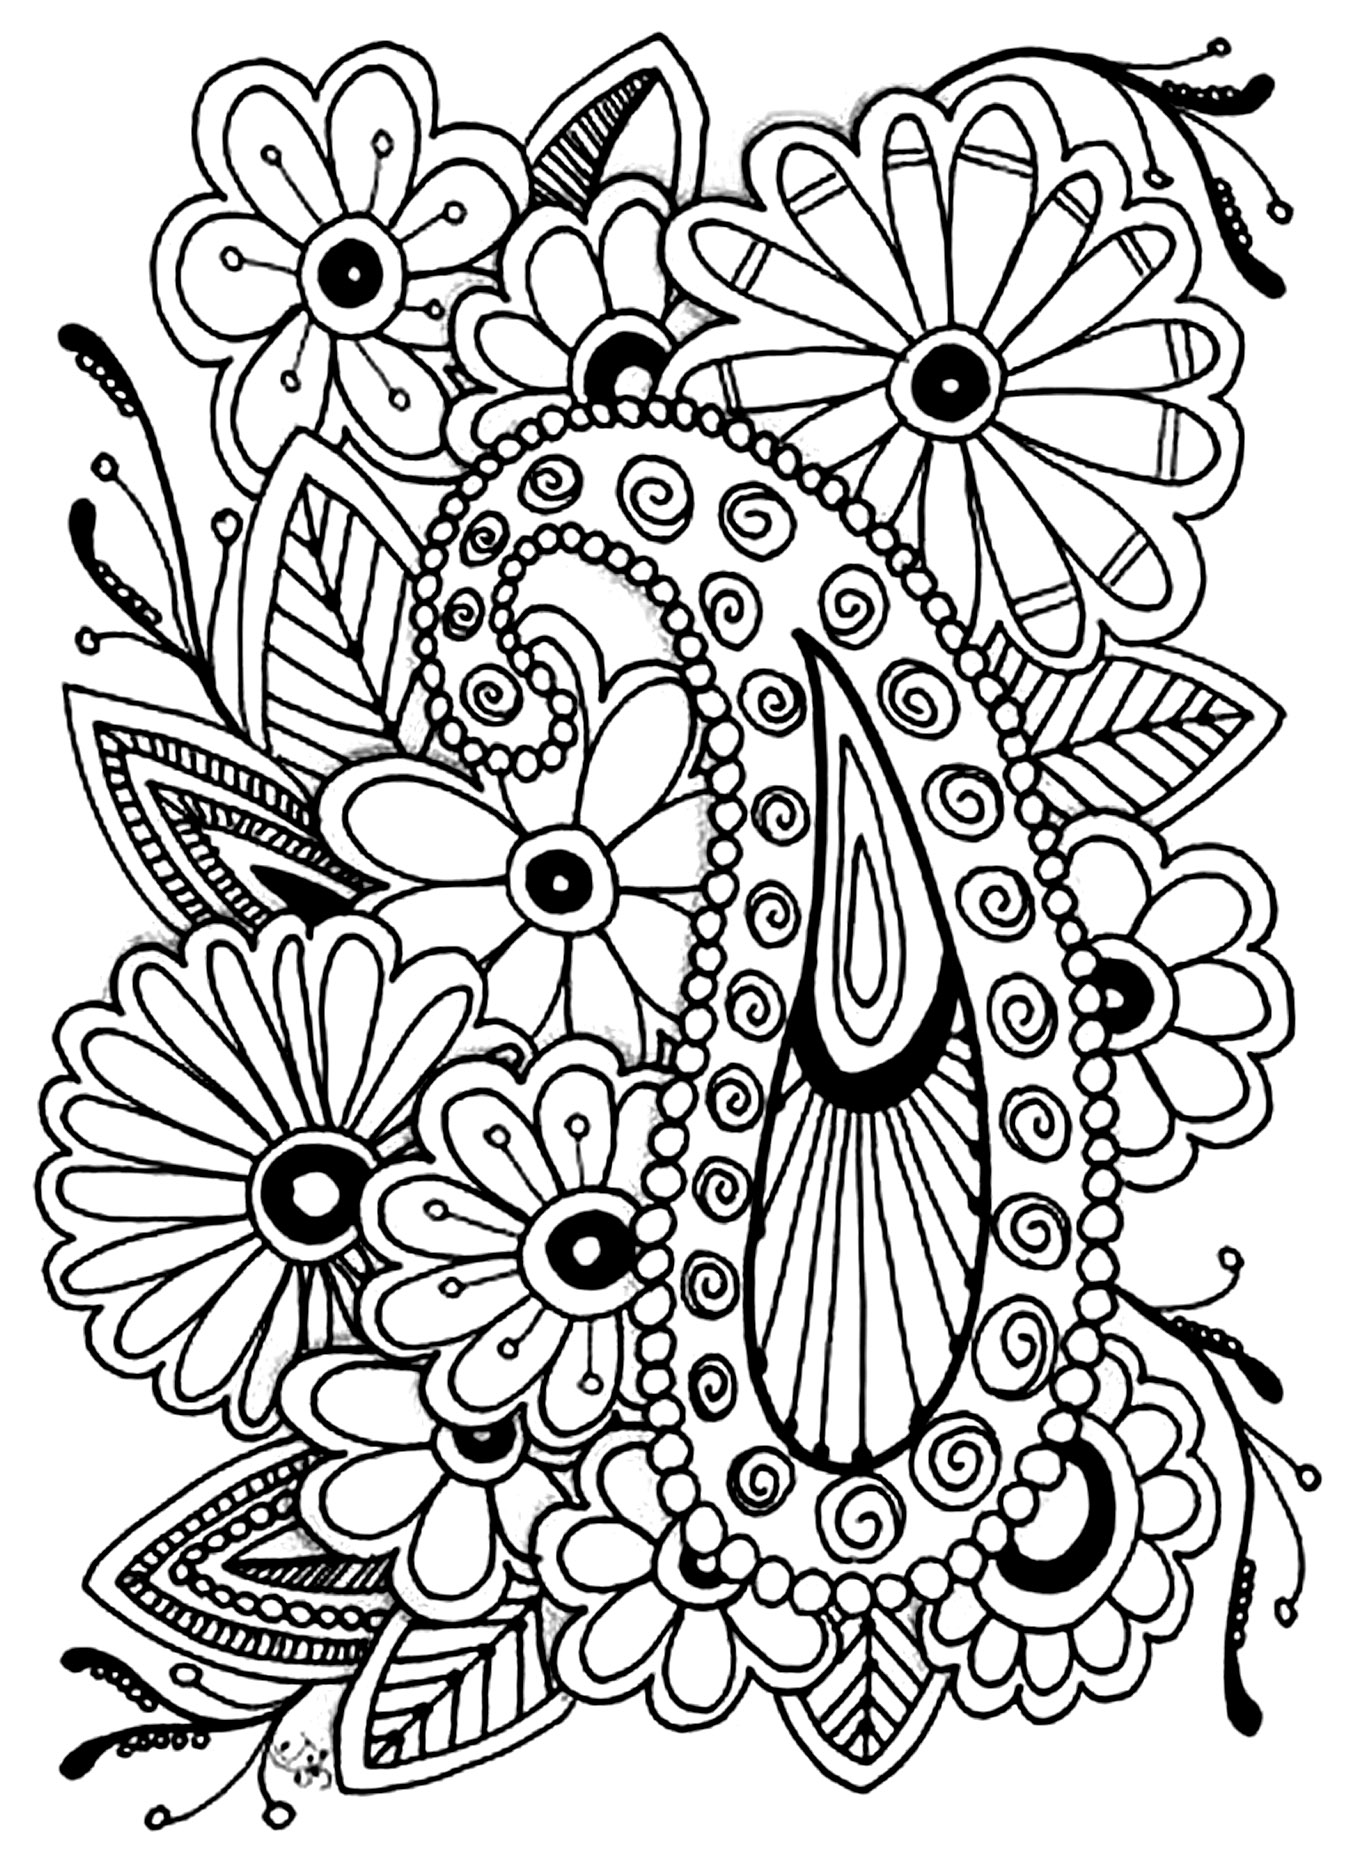 printable coloring pages for adults flowers printable coloring pages for adults flowers coloring home pages printable adults flowers coloring for